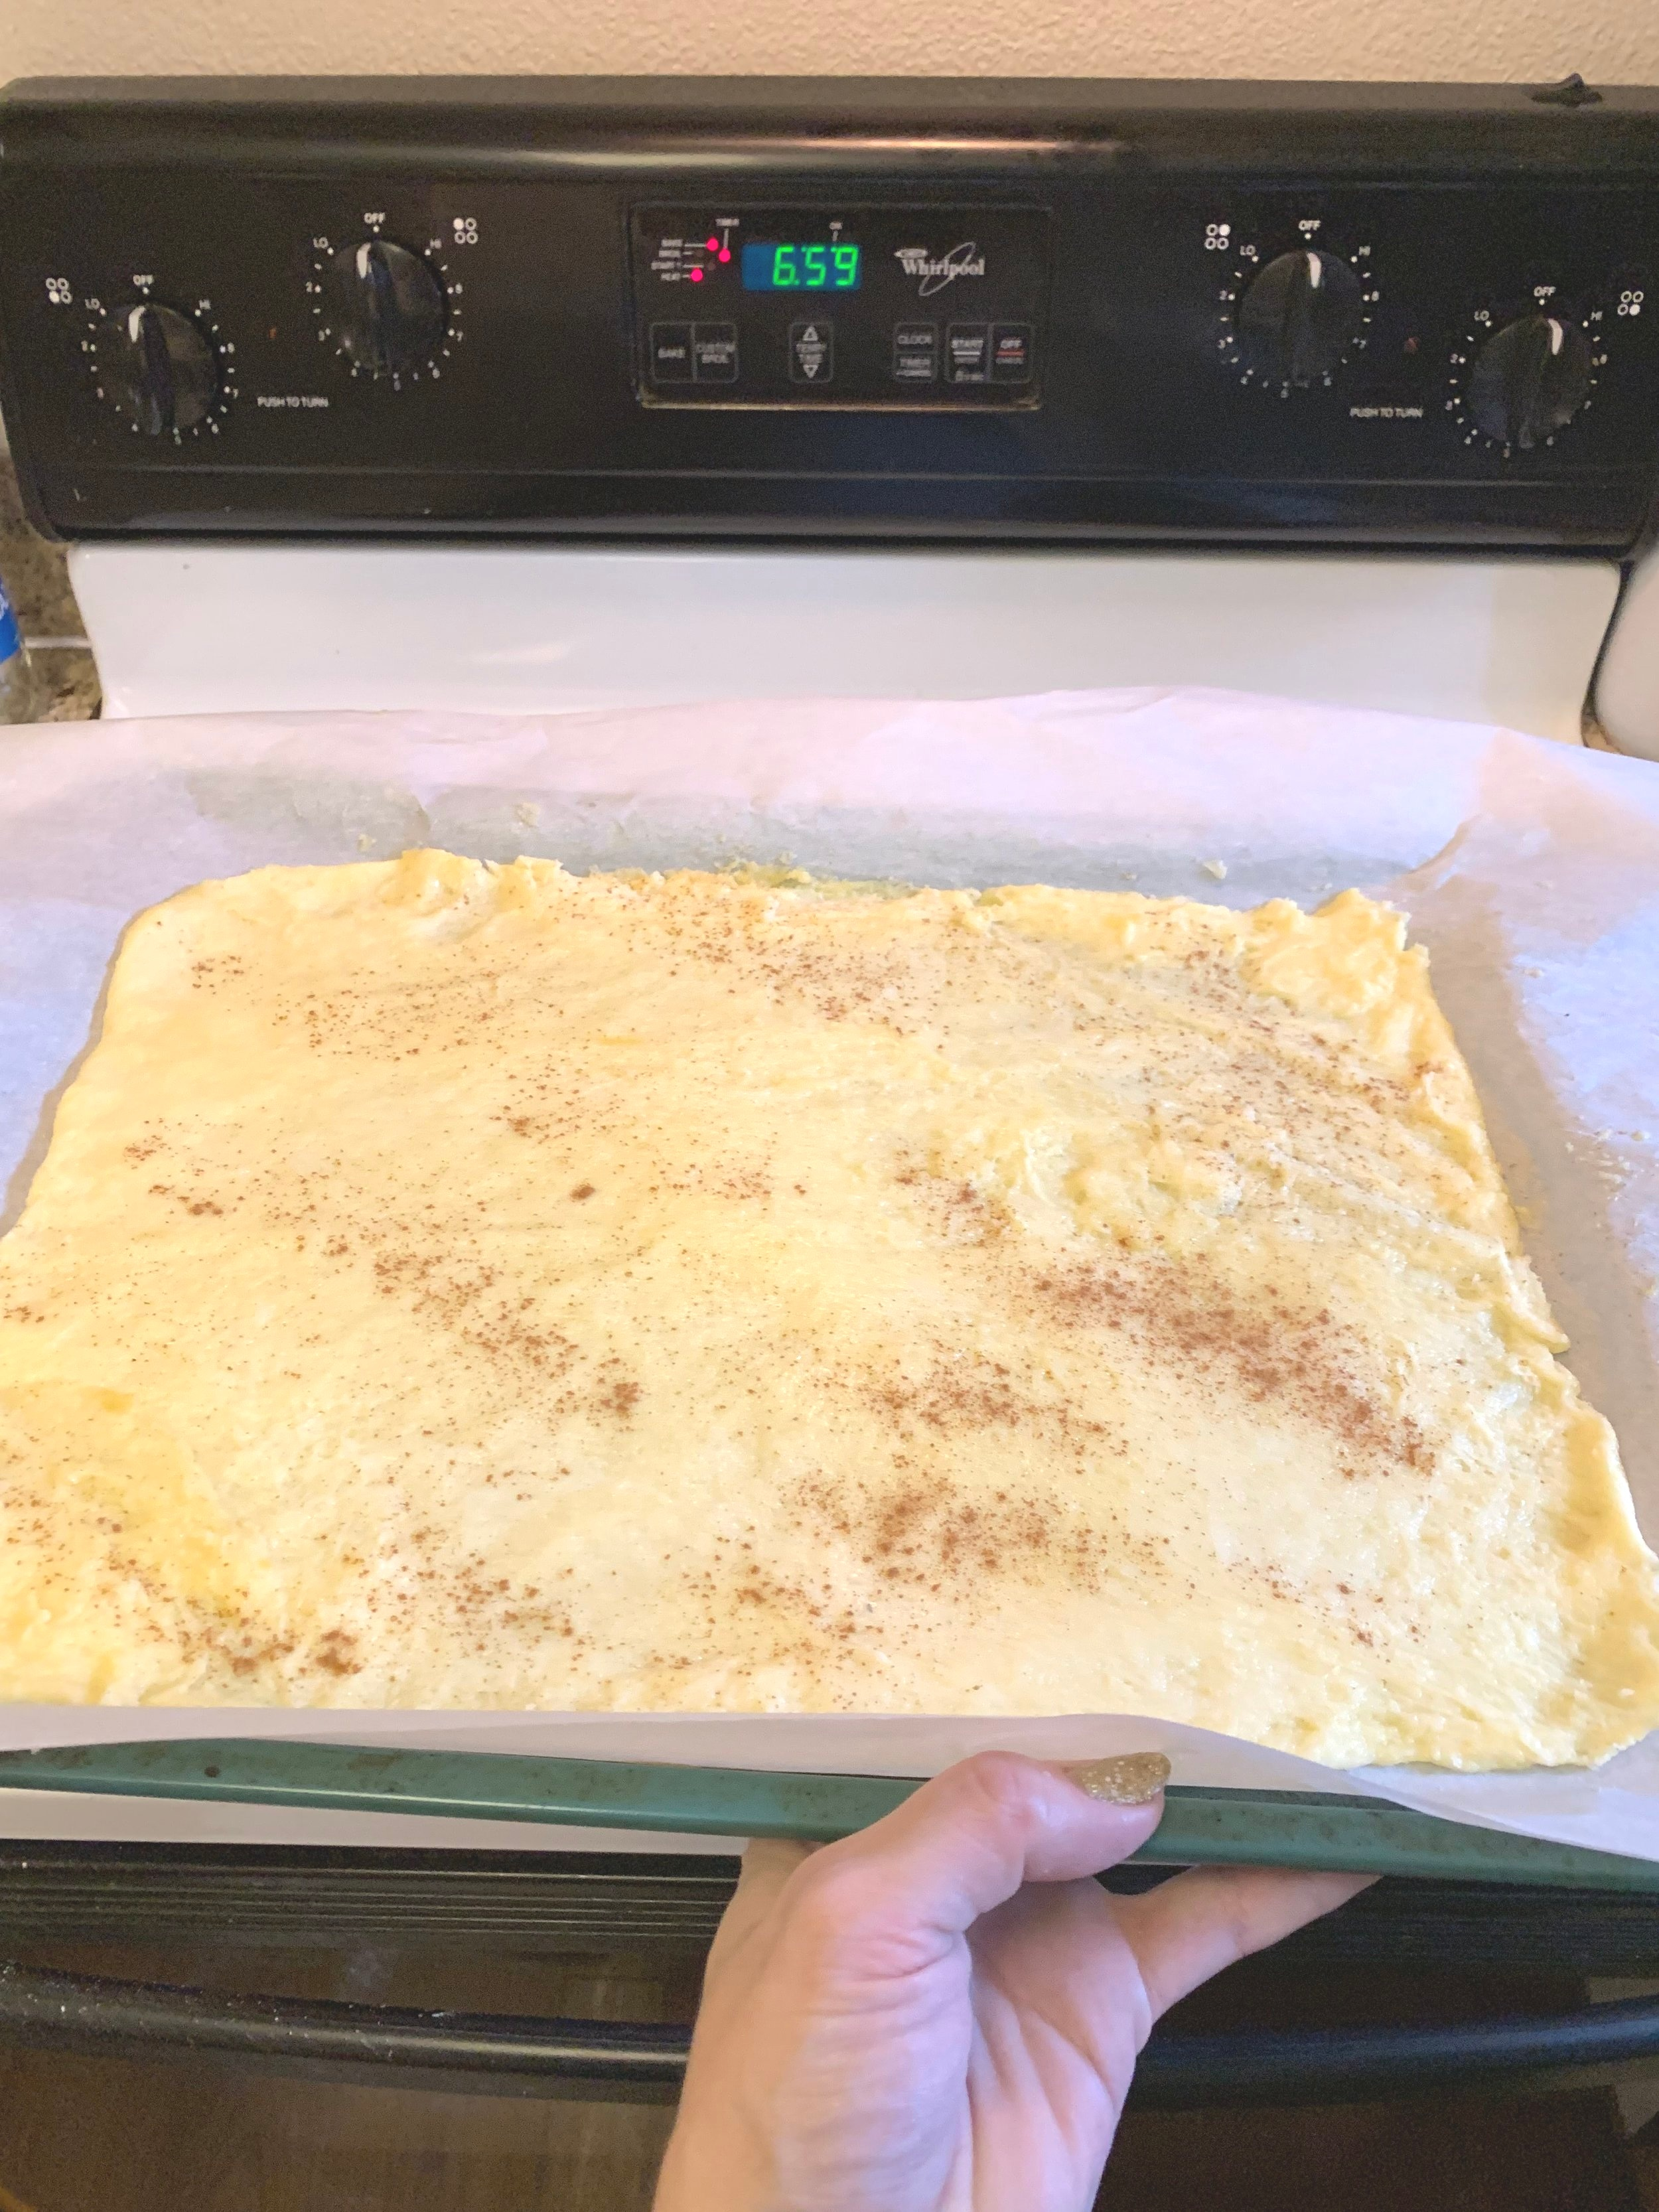 3. Roll out into a rectangle on parchment paper and sprinkle cinnamon on top. Bake for 7 min at 350 degrees. This will help it set and make it easier to roll-up. -